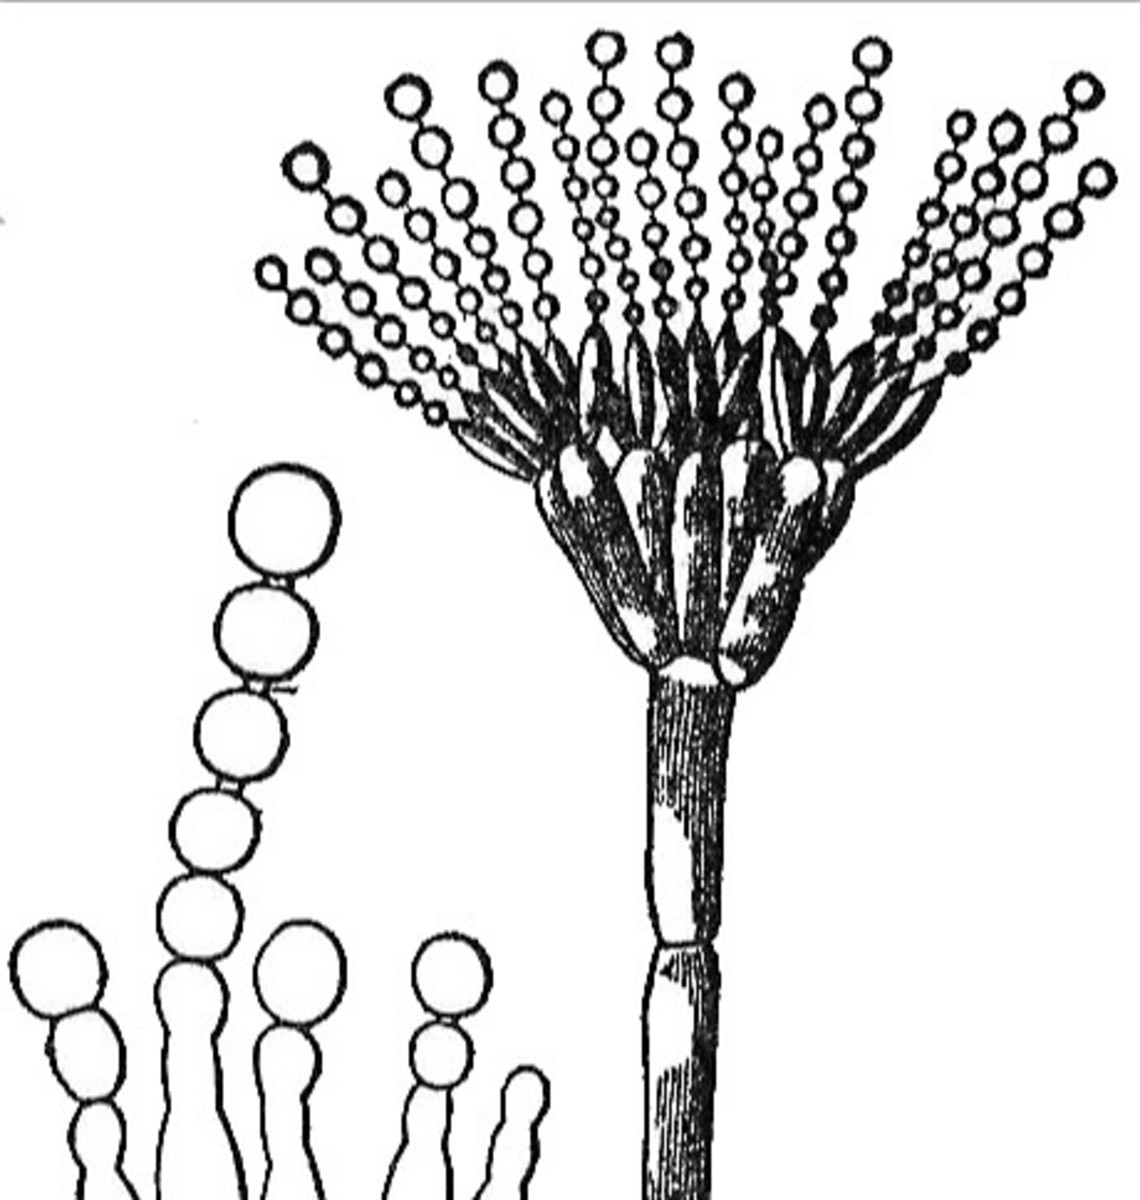 A conidiophore bearing conidia